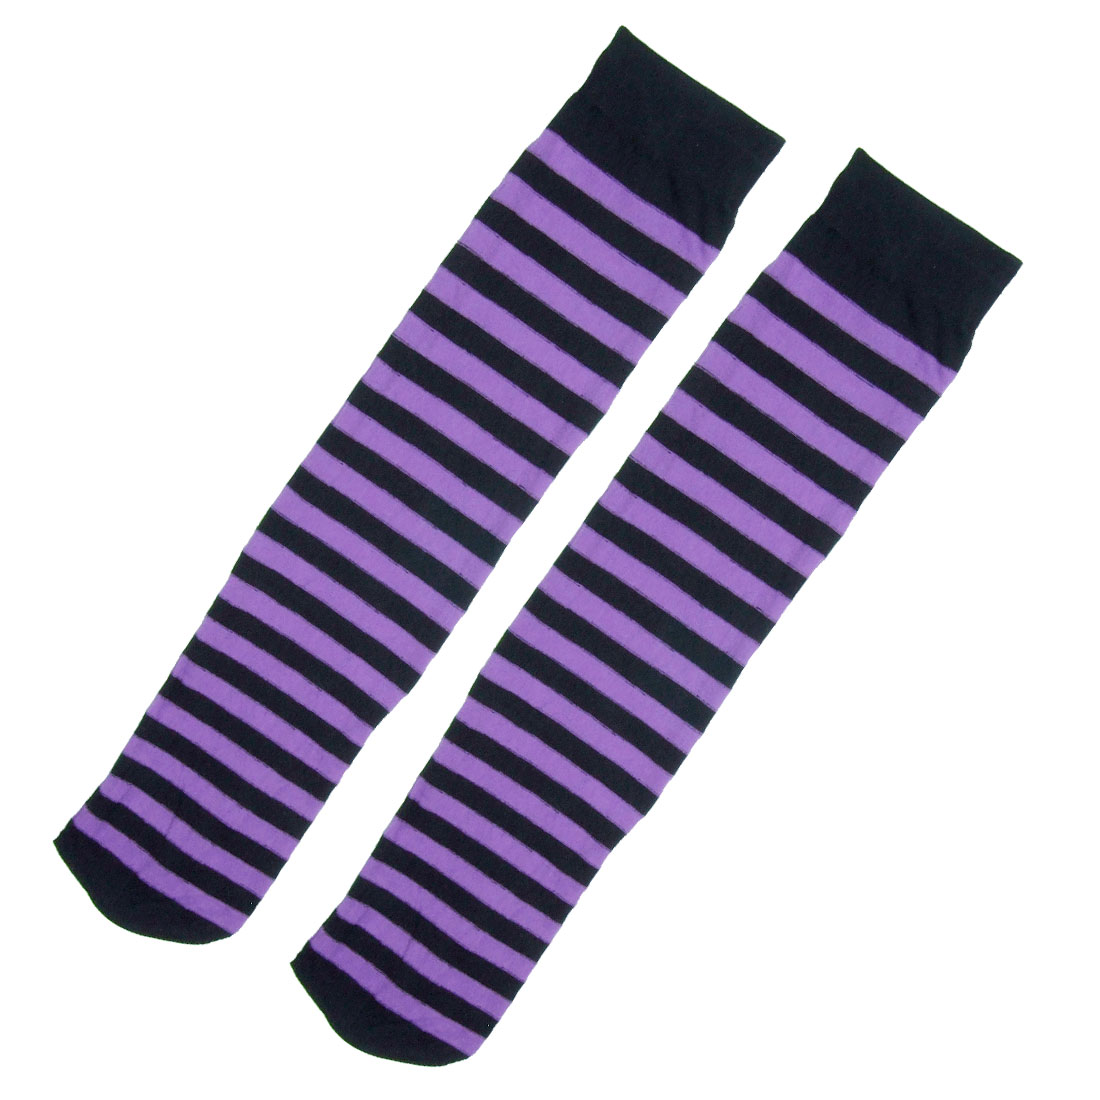 Stripe Style Fashion Close-fiting Knee High Socks Black & Purple